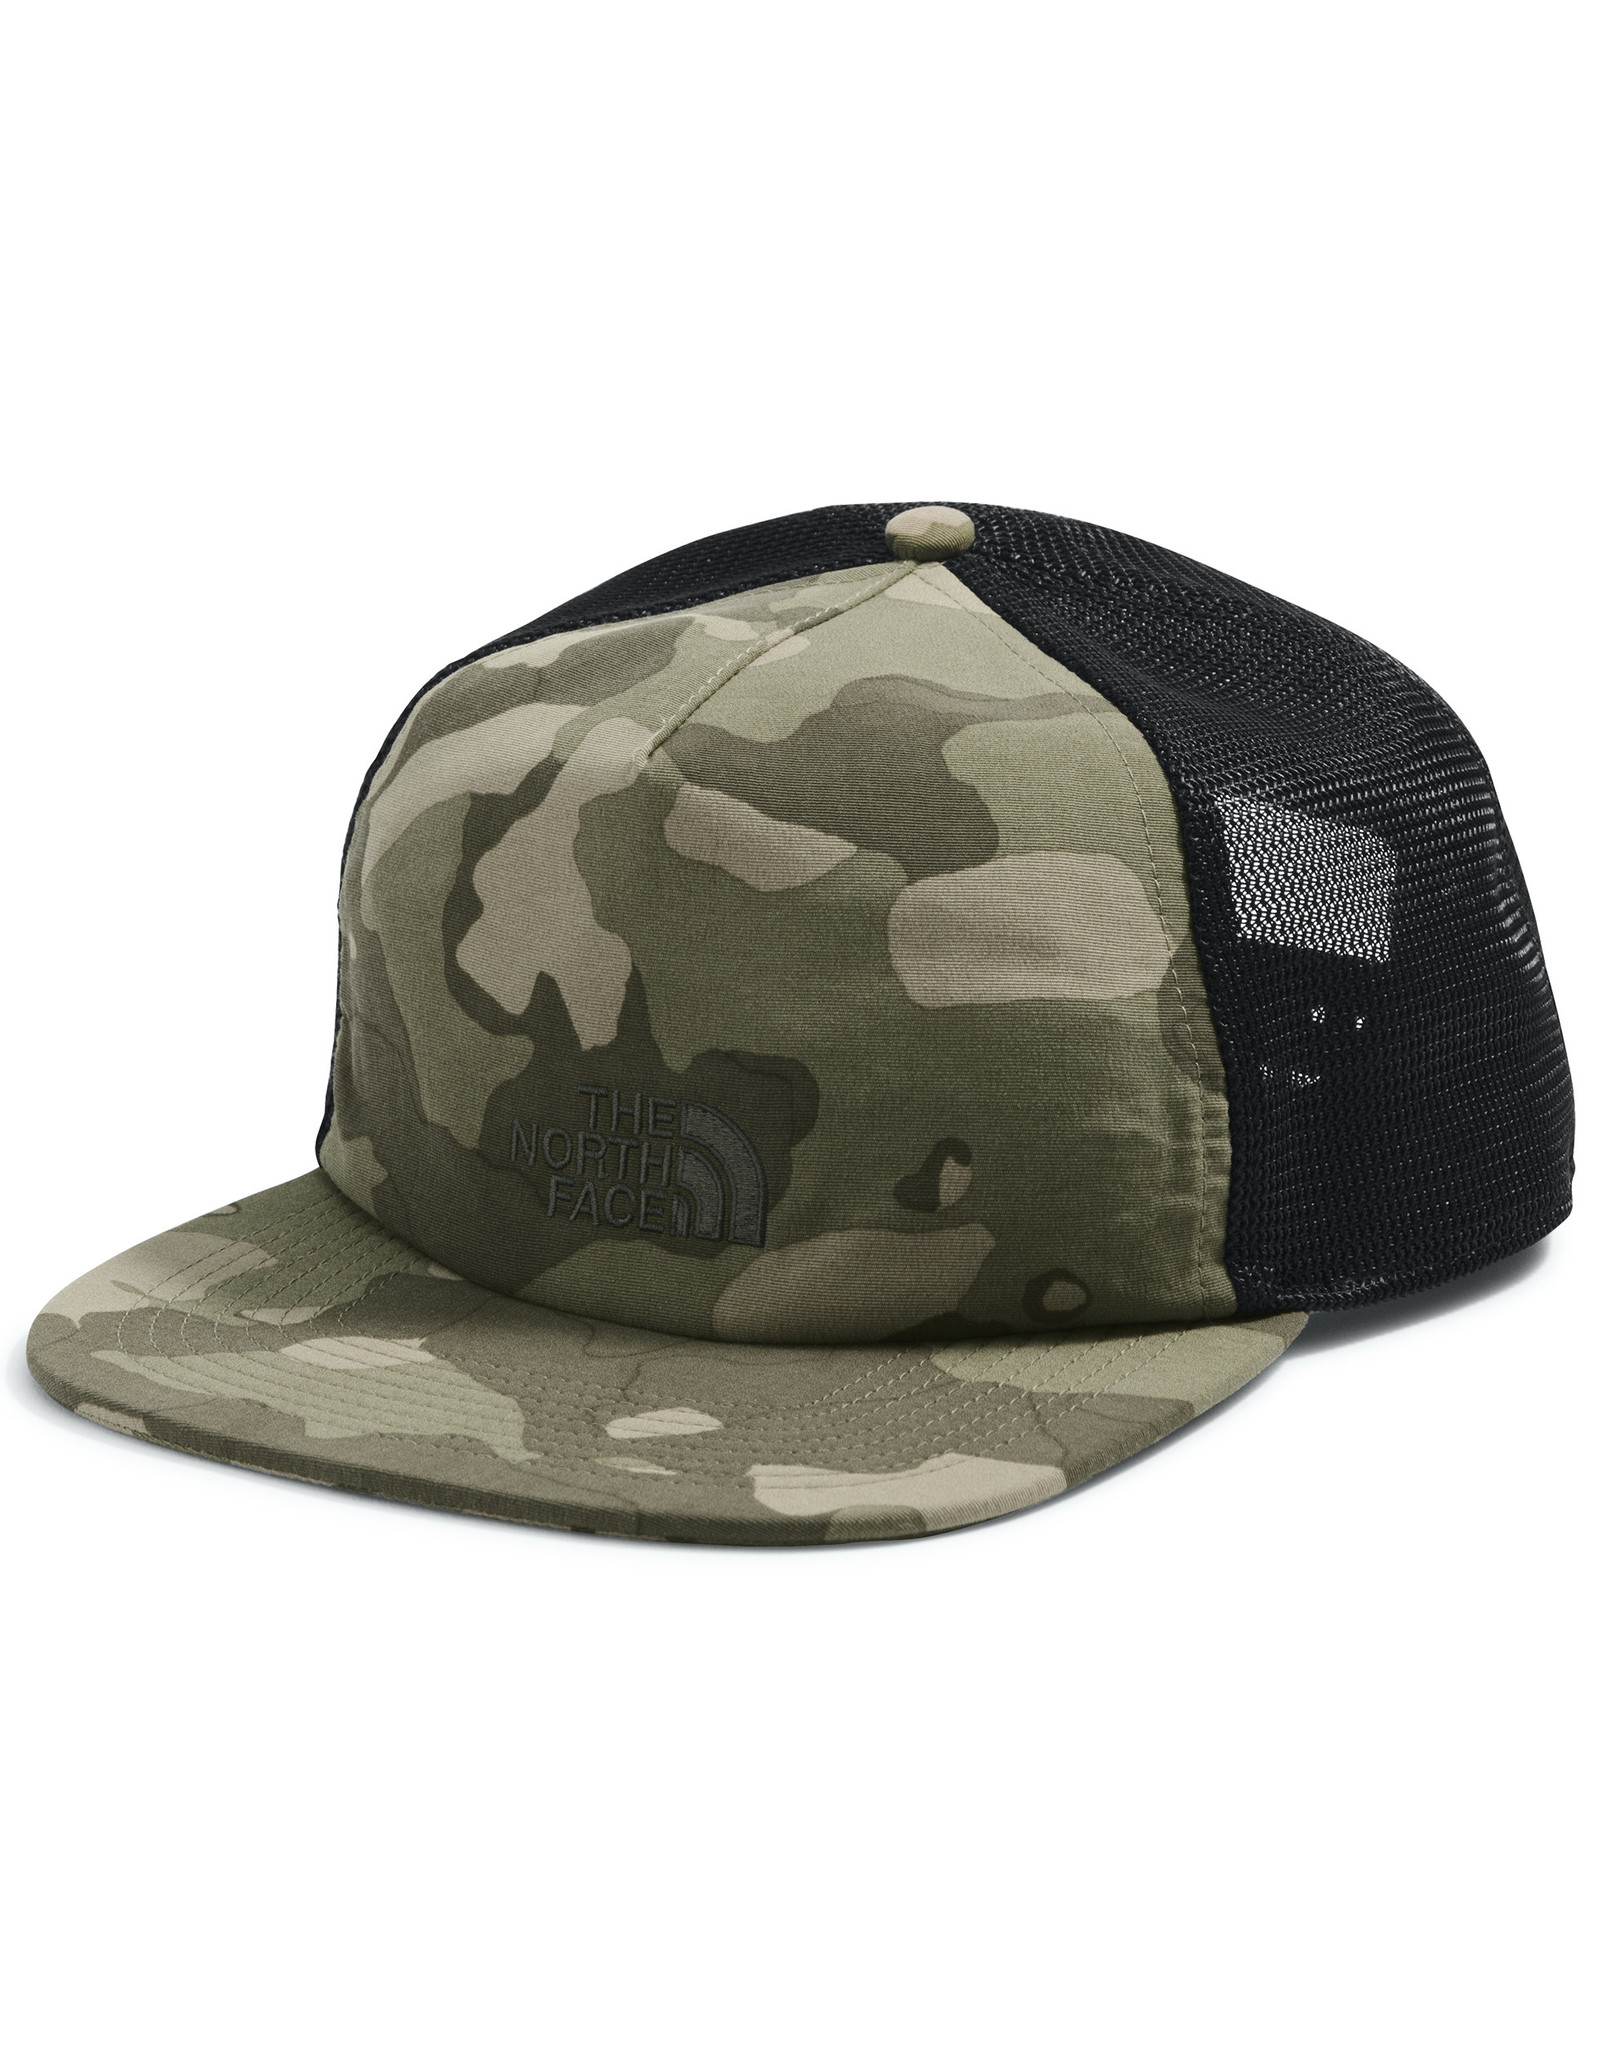 The North Face The North Face Class V Trucker - S2020